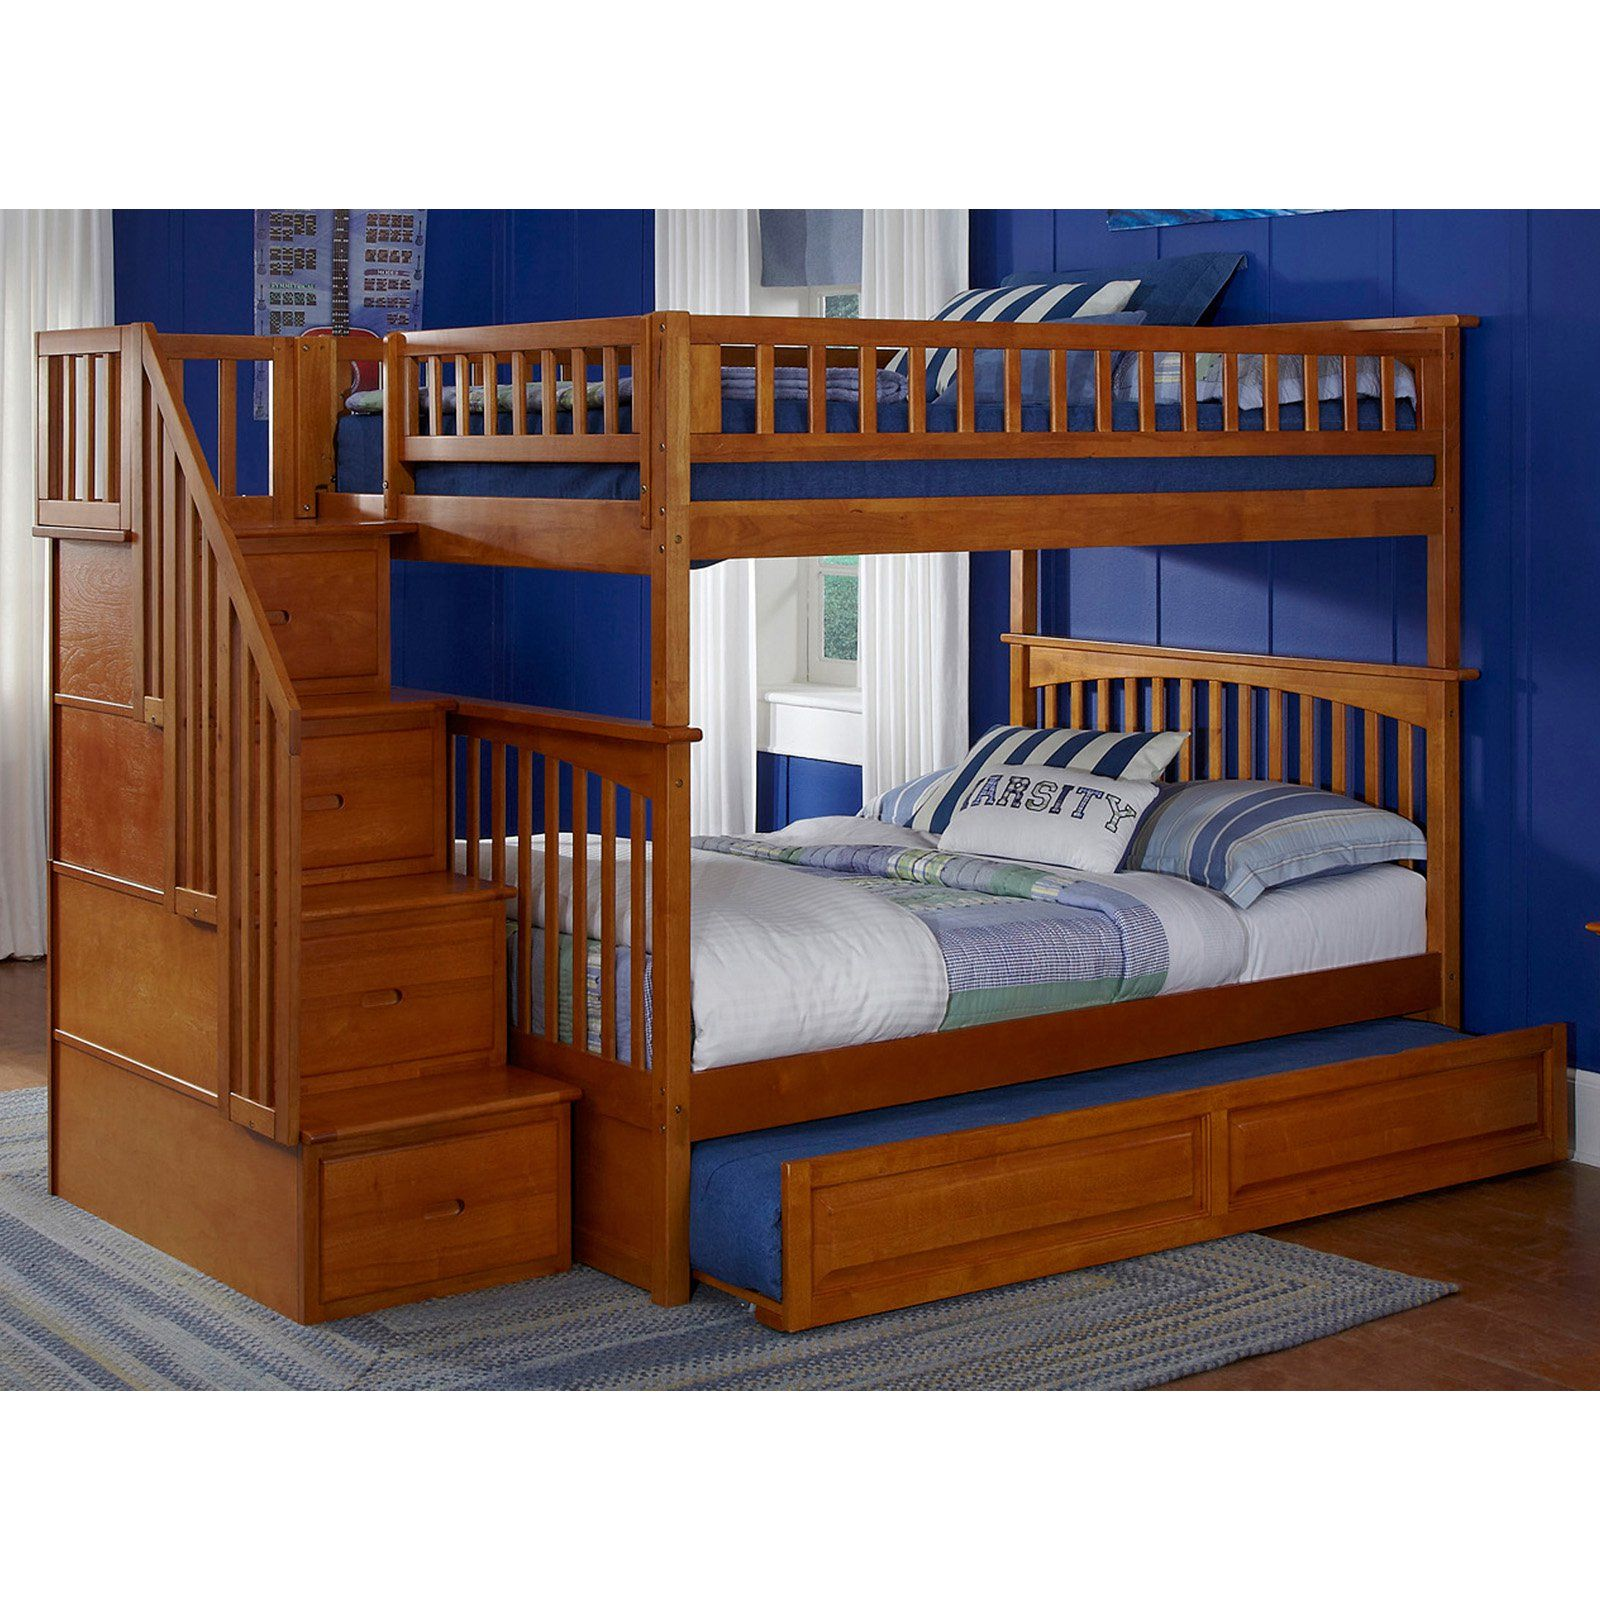 36db6a9e4922b Atlantic Furniture Columbia Staircase Full Over Full Bunk Bed